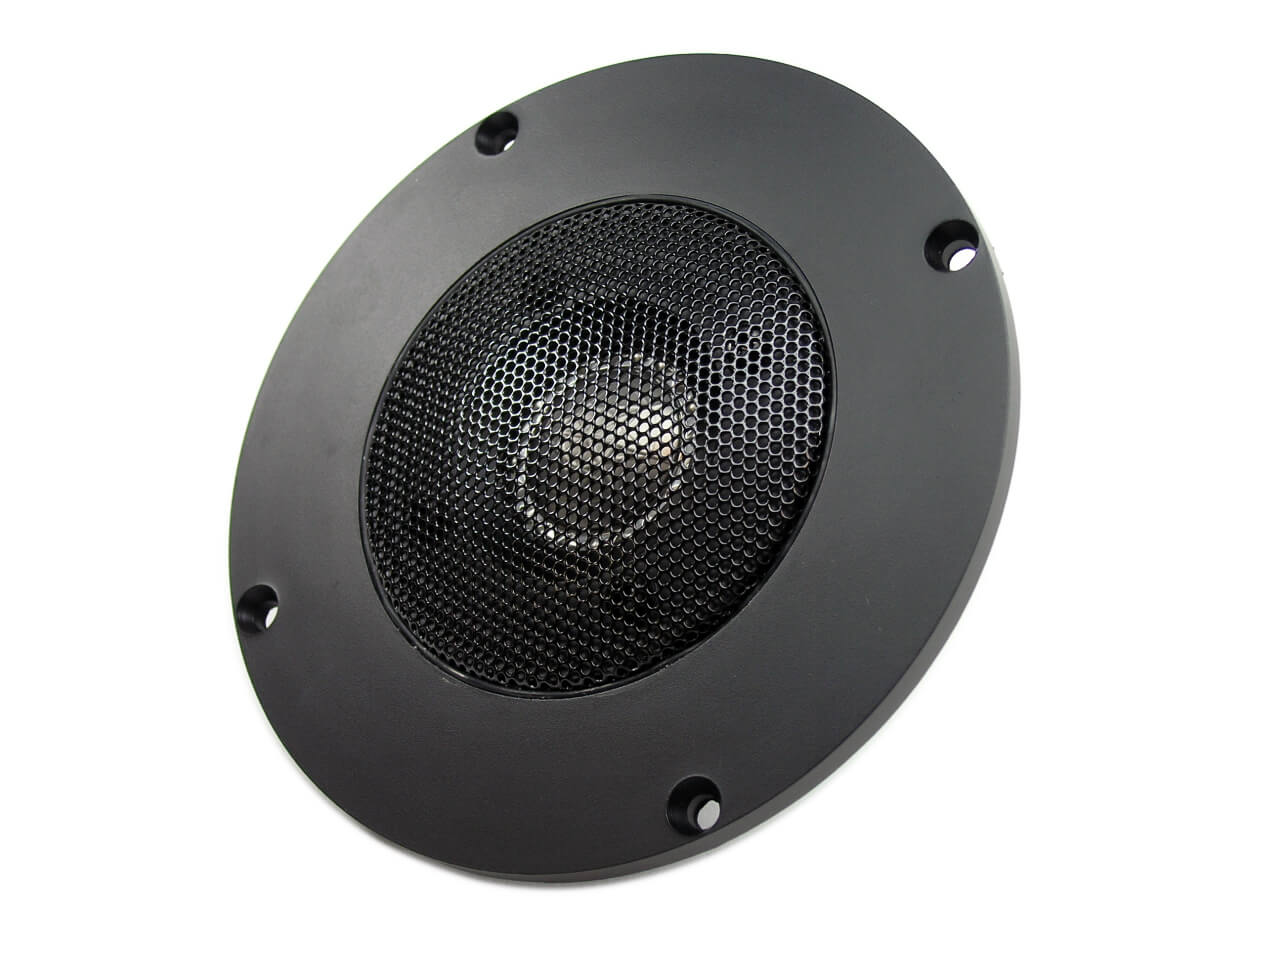 JBL Style 035Ti, 035Tia Titanium Dome Tweeter, L5, L7, L60, L80, 4410, 4412, Others, T-035Tia